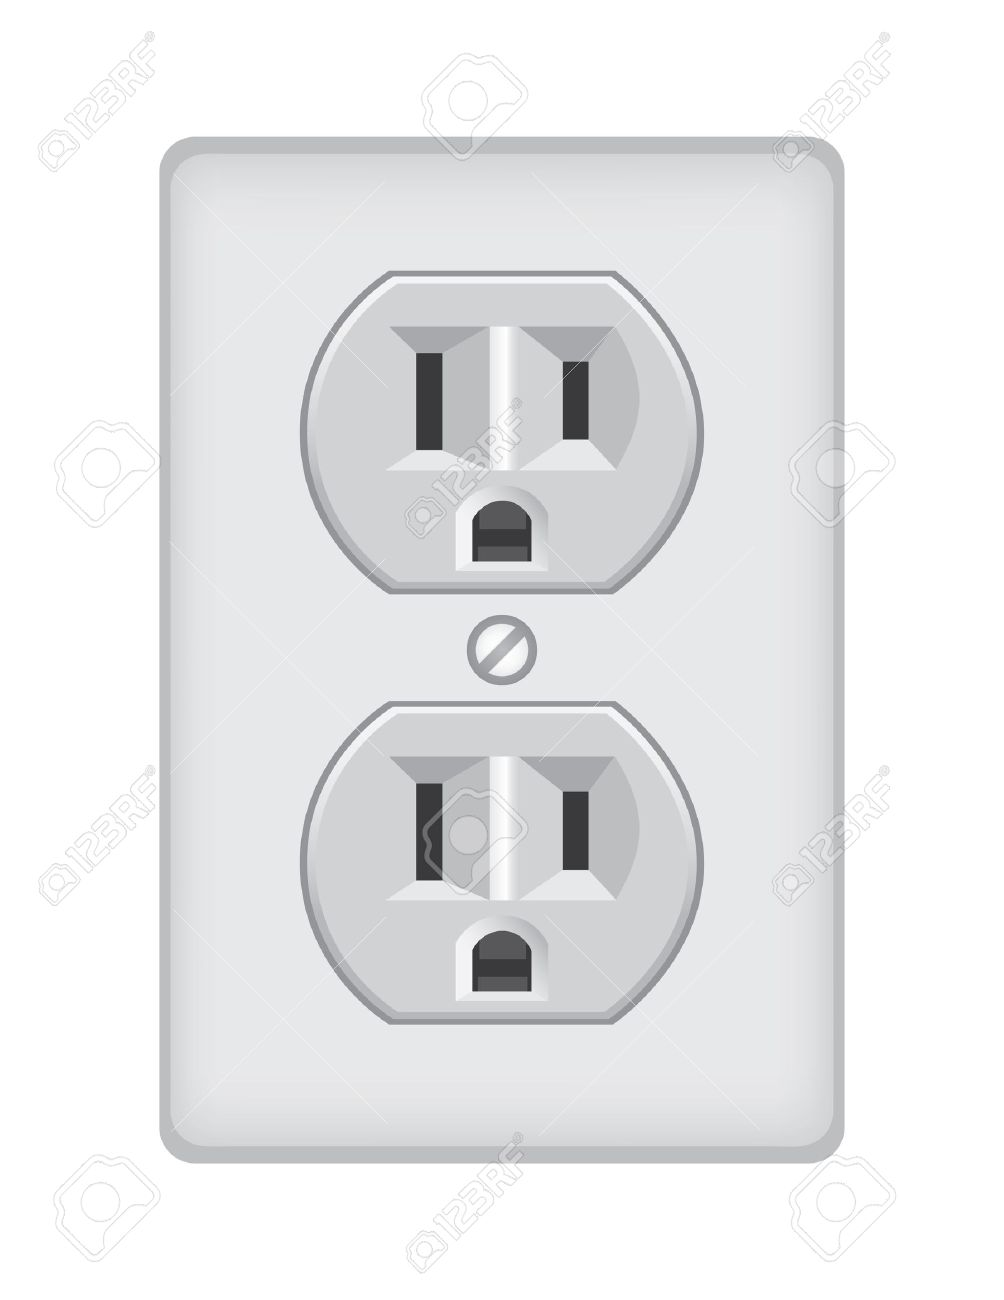 U S Electric Household Outlet Isolated - Illustration Royalty Free ...